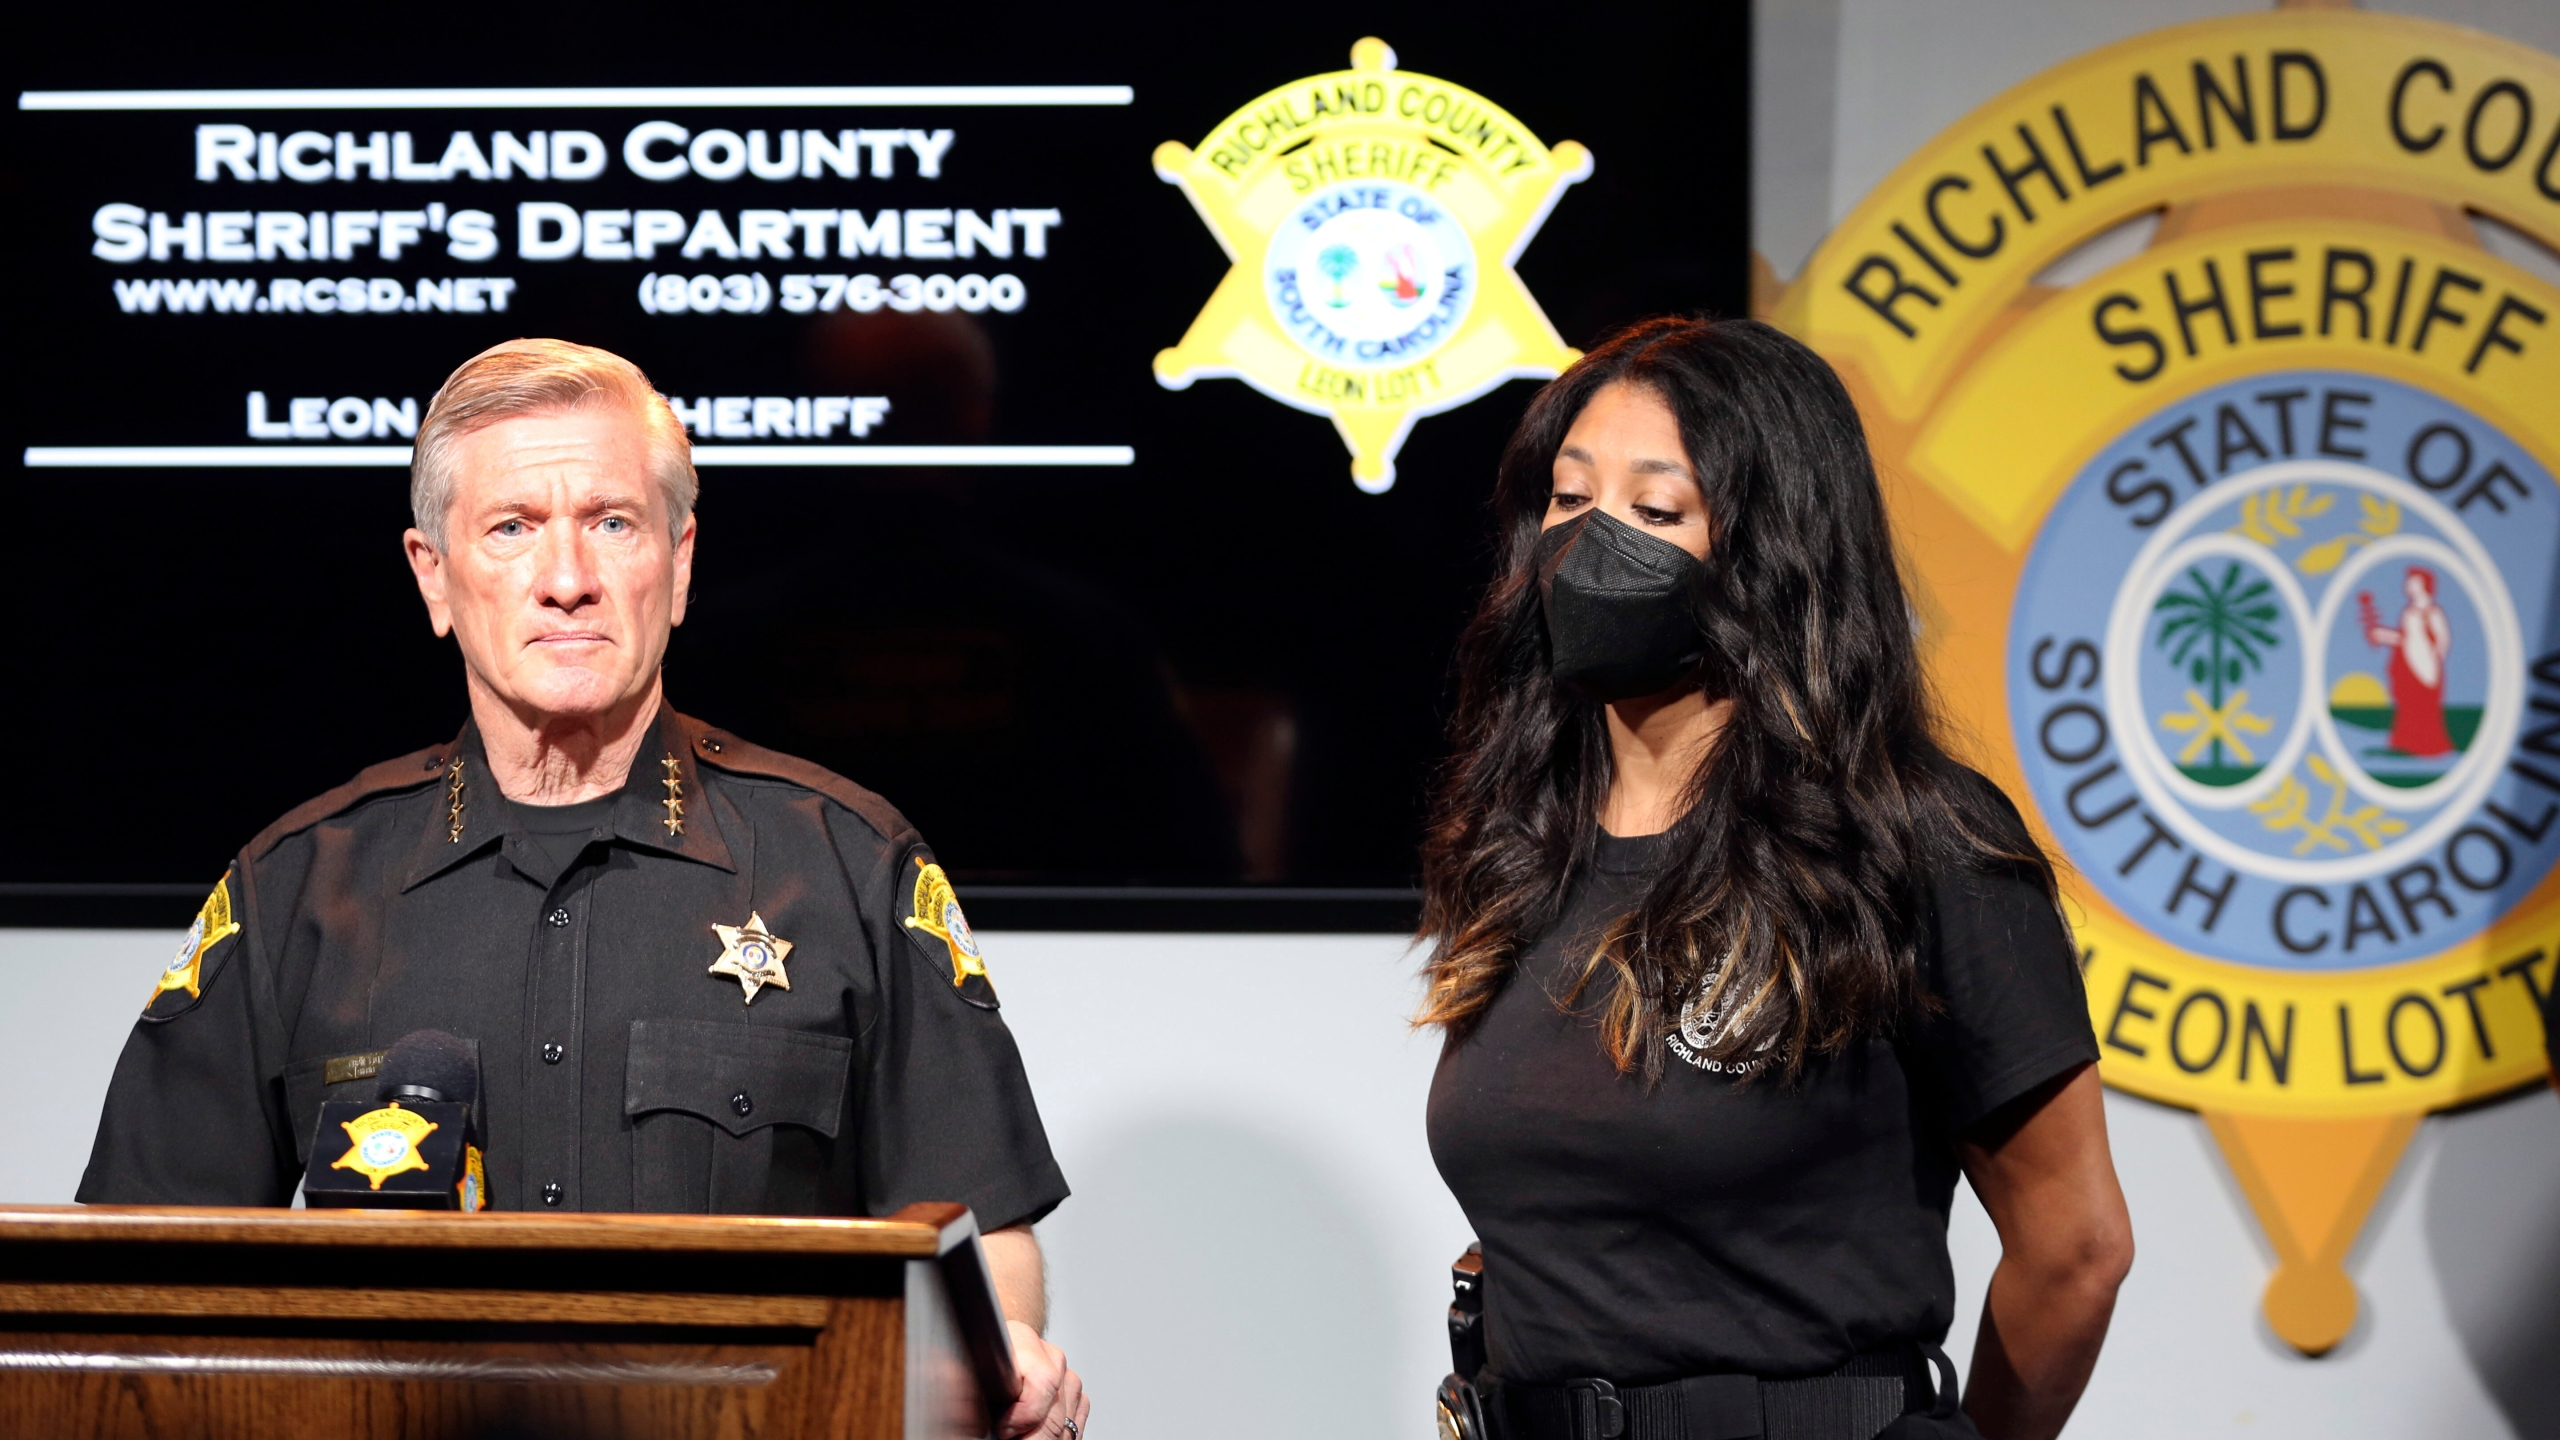 Richland County Sheriff Leon Lott, left, and Coroner Nadia Rutherford, right, talk about the heat deaths of two 20-month-old twin boys during a news conference on Tuesday, Sept. 21, 2021, in Columbia, S.C. Authorities ruled the deaths an accident after the father was distracted by intense pressure at work and no charges will be filed. (AP Photo/Jeffrey Collins)